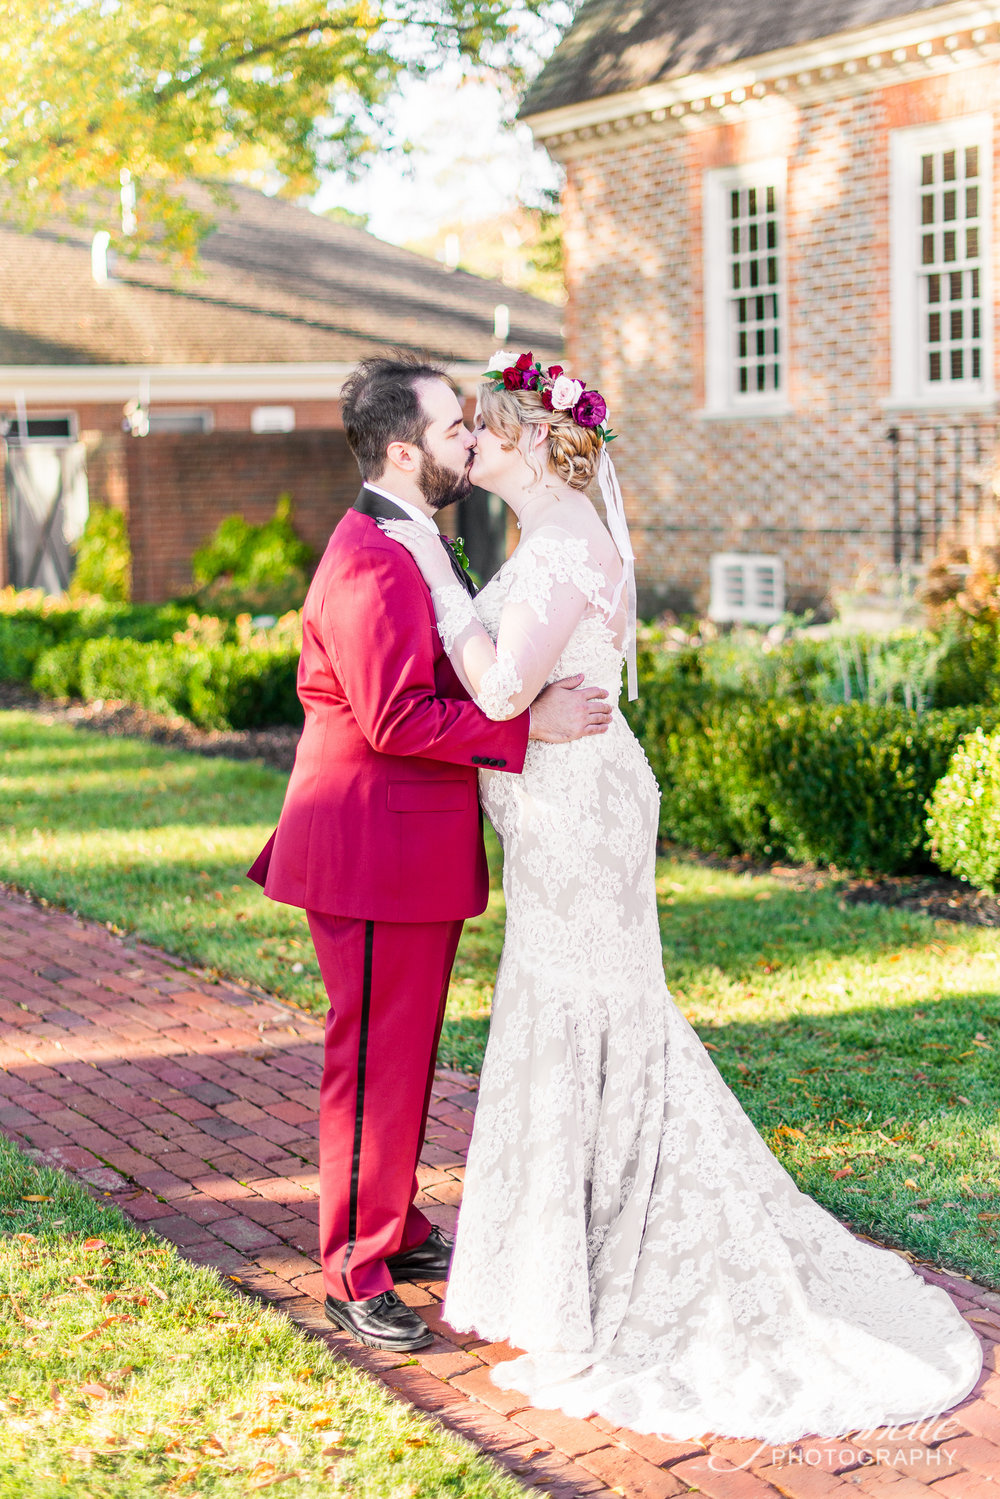 A groom kissing his bride on their wedding day at Willow Oaks Country Club in Richmond, Virginia